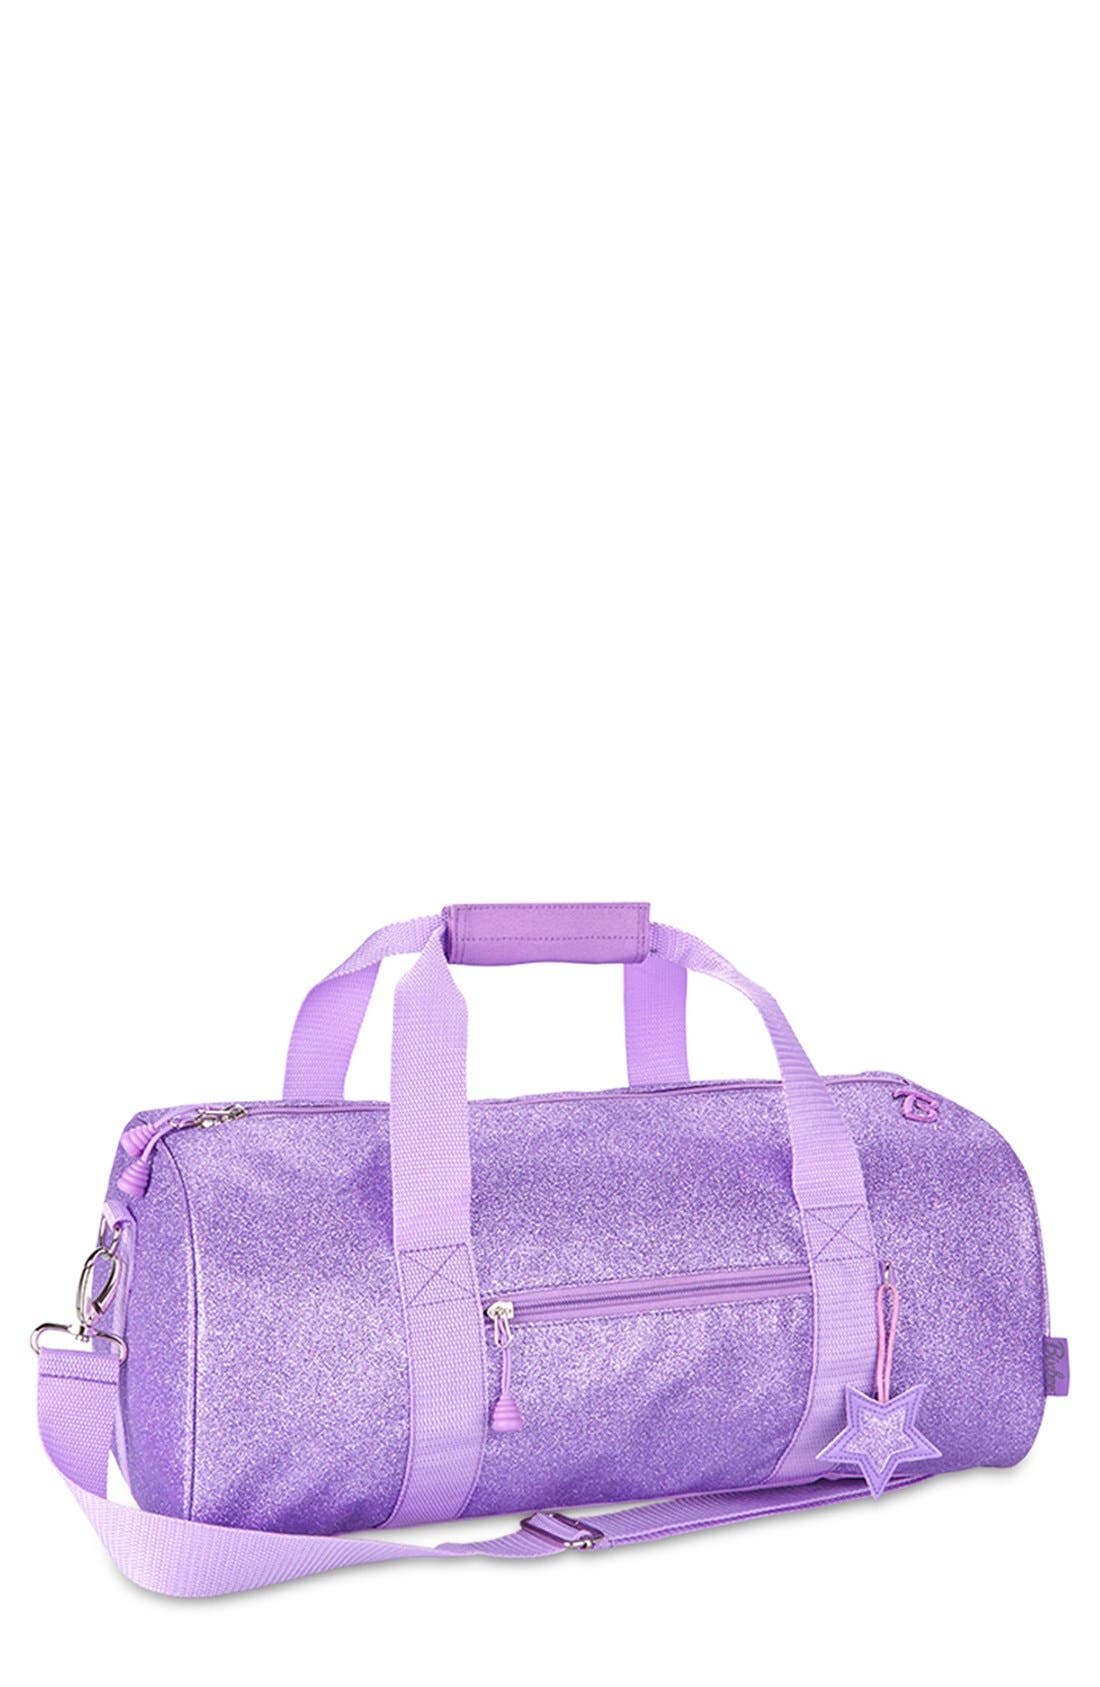 BIXBEE 'Large Sparkalicious' Dance & Sports Duffel Bag